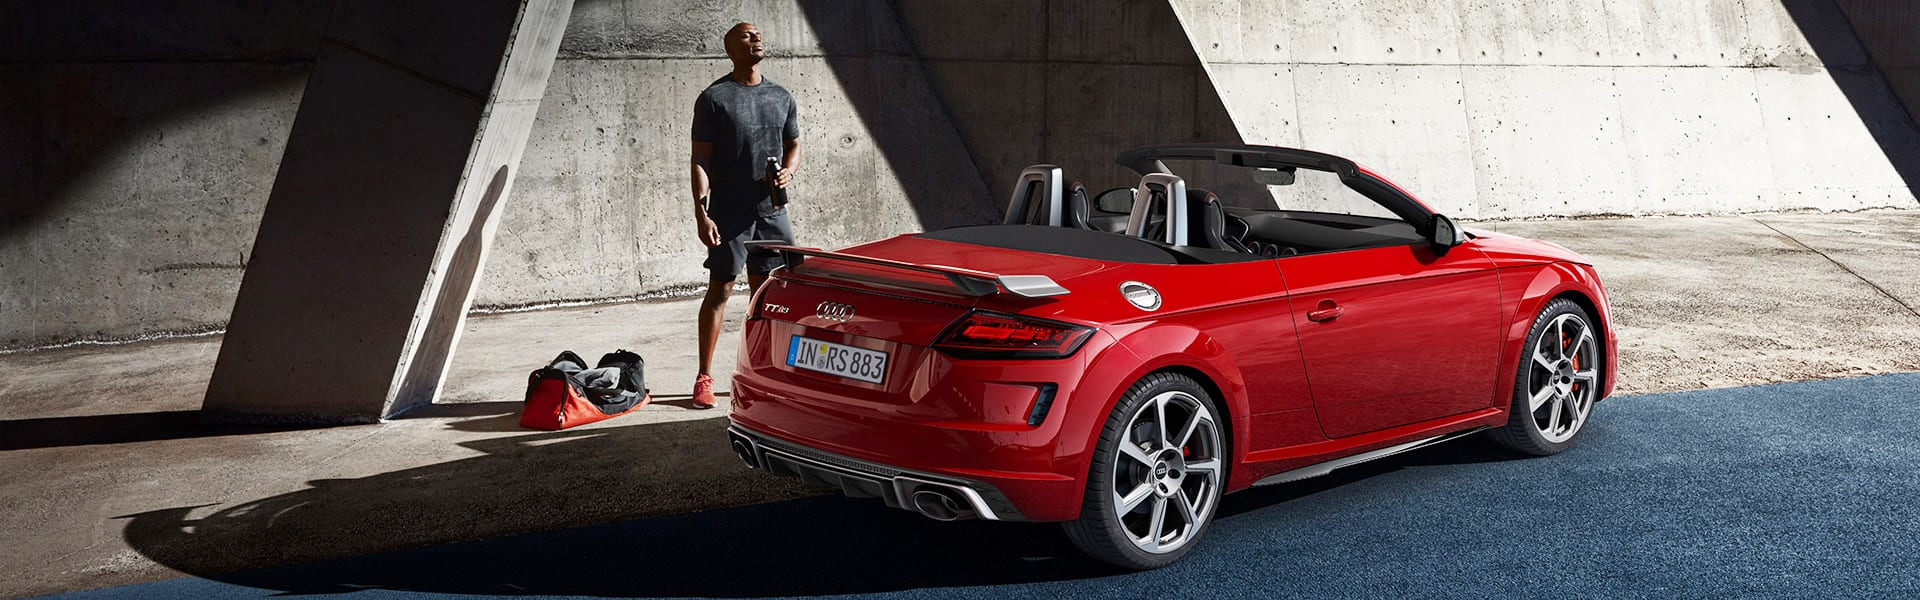 The all new Audi TT RS Roadster